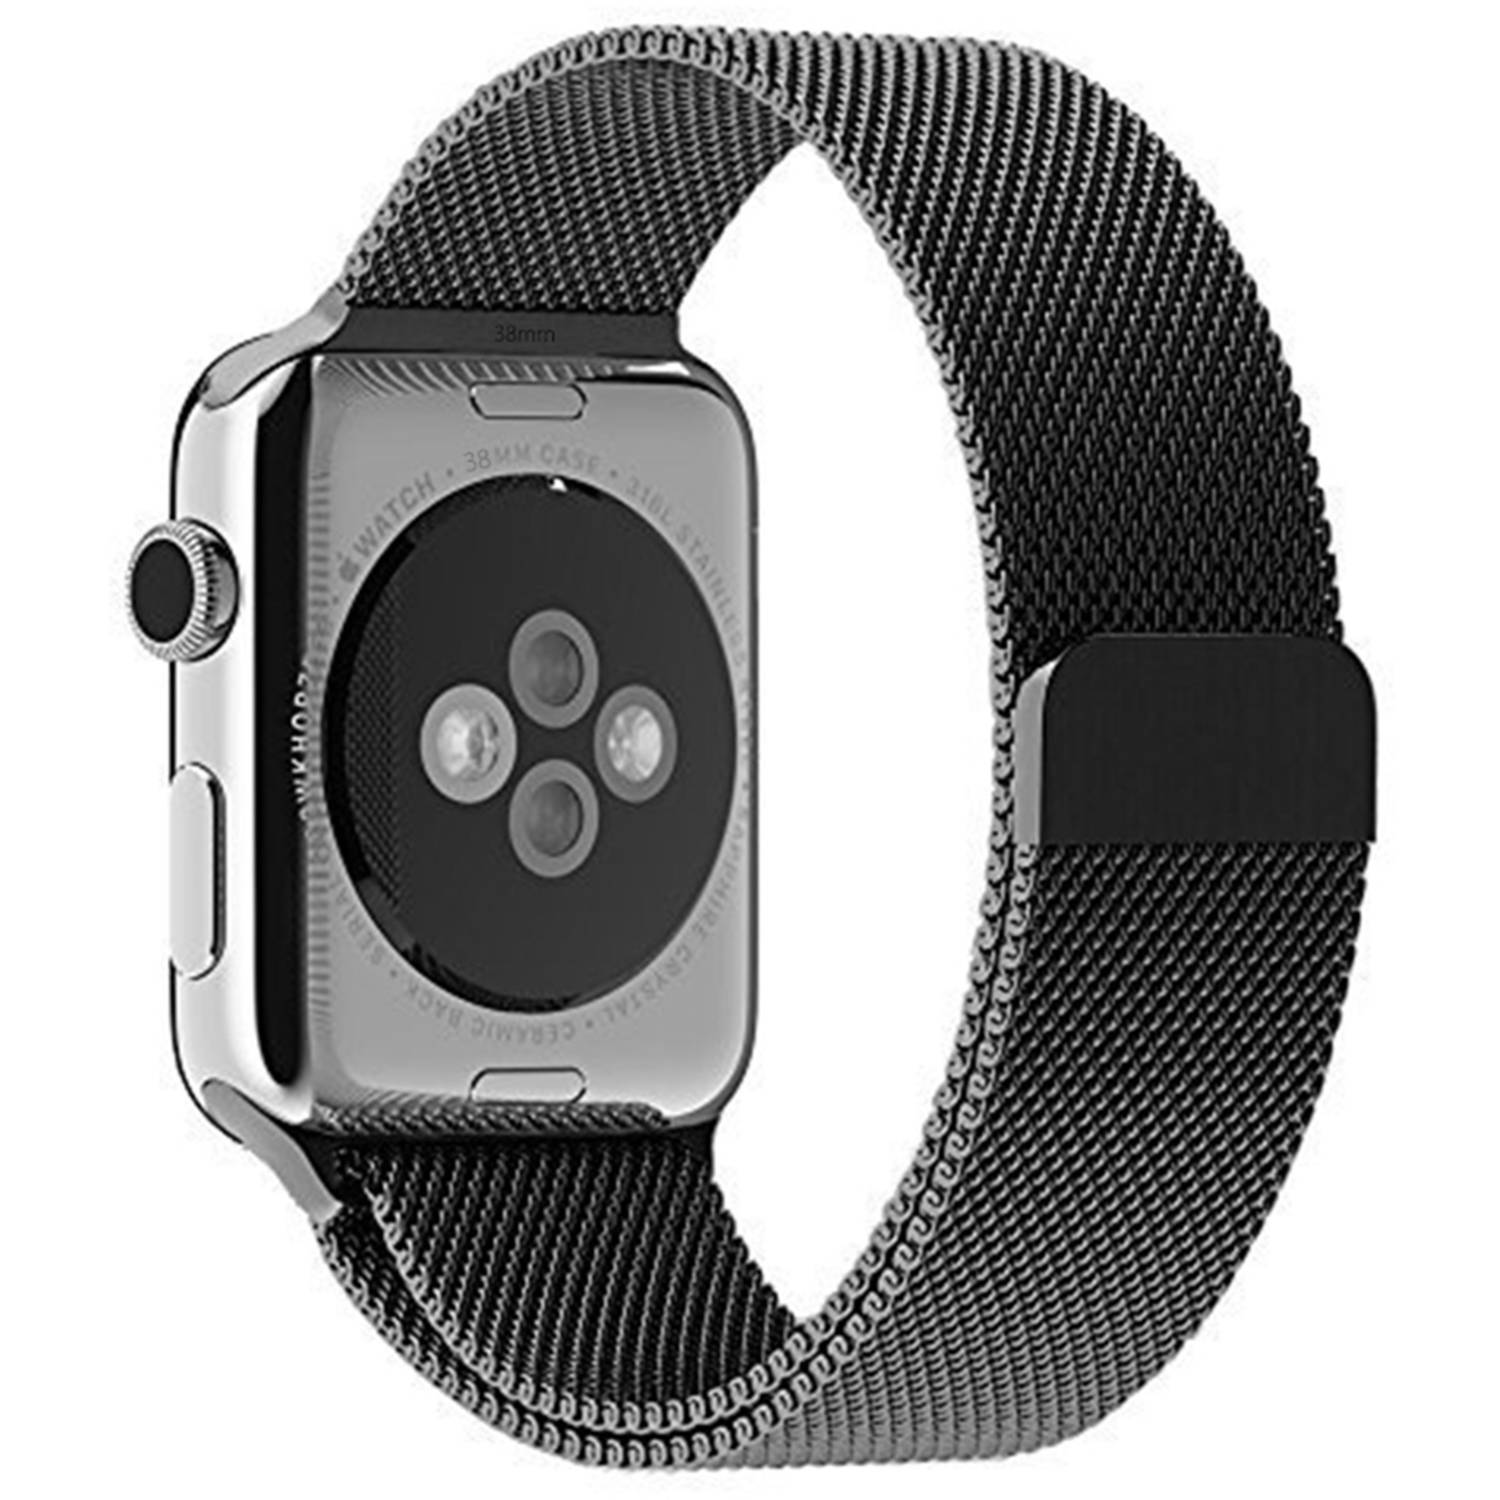 JETech 38mm Milanese Loop Stainless Steel Bracelet Strap Band Replacement Band for Apple Watch Series 1 and 2